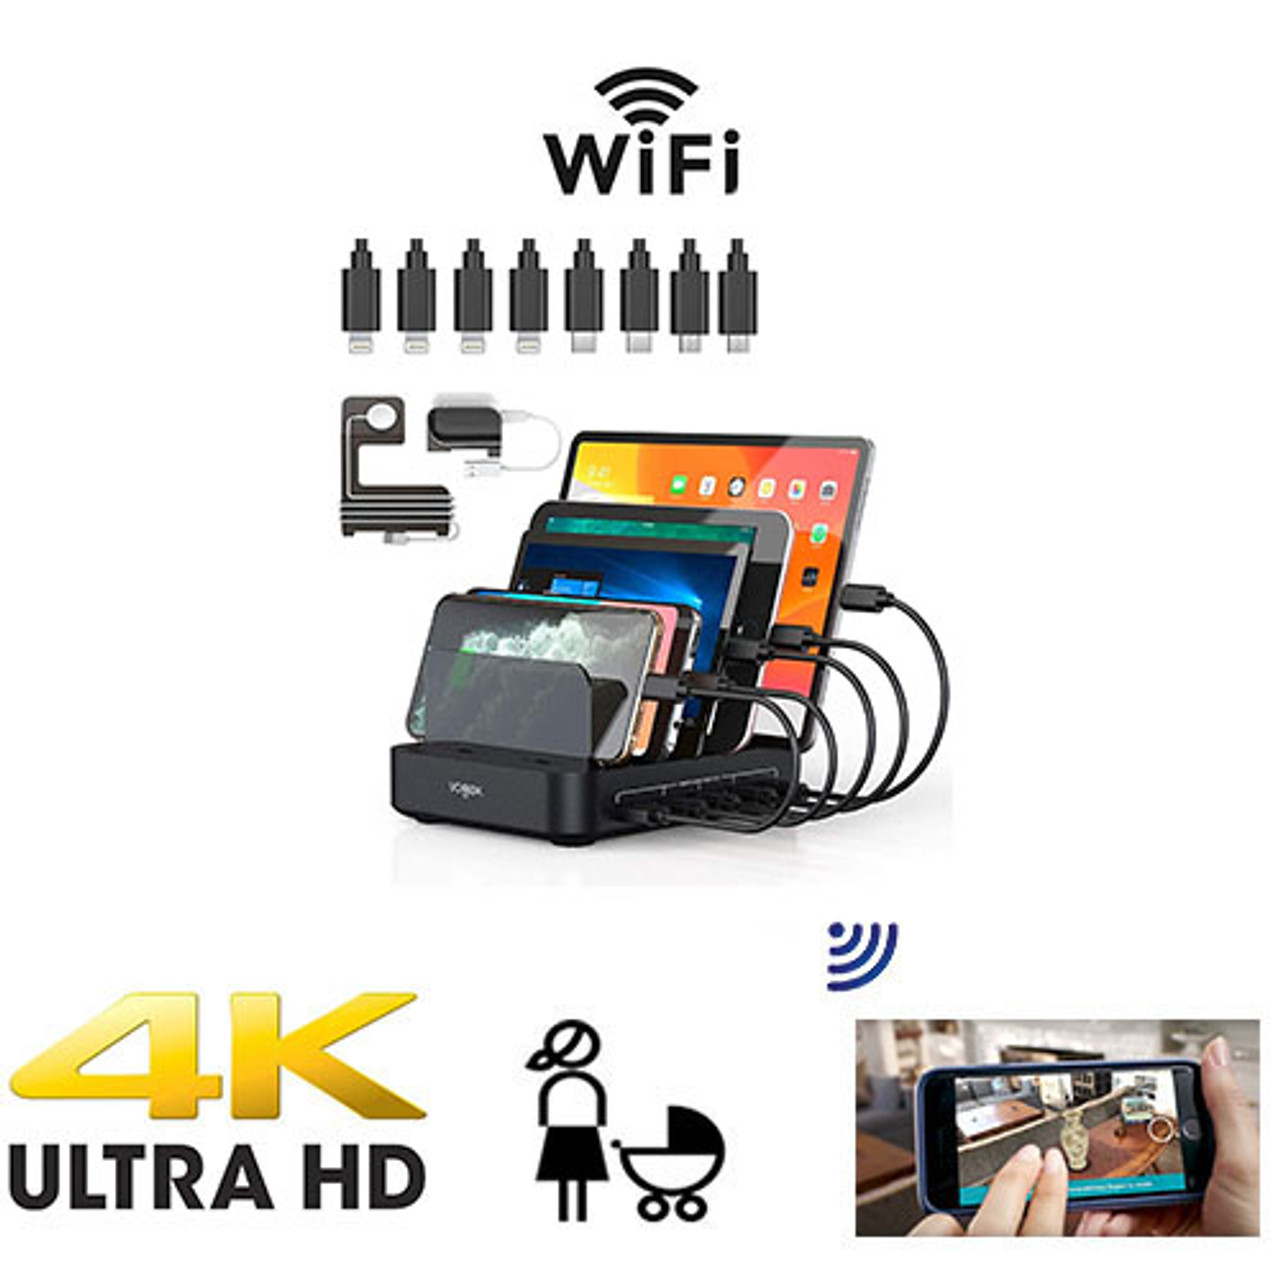 UHD 4k USB Outlet Tap Hidden Spy Camera Includes a 128 gig sd card W/ Live View WiFi + Dvr